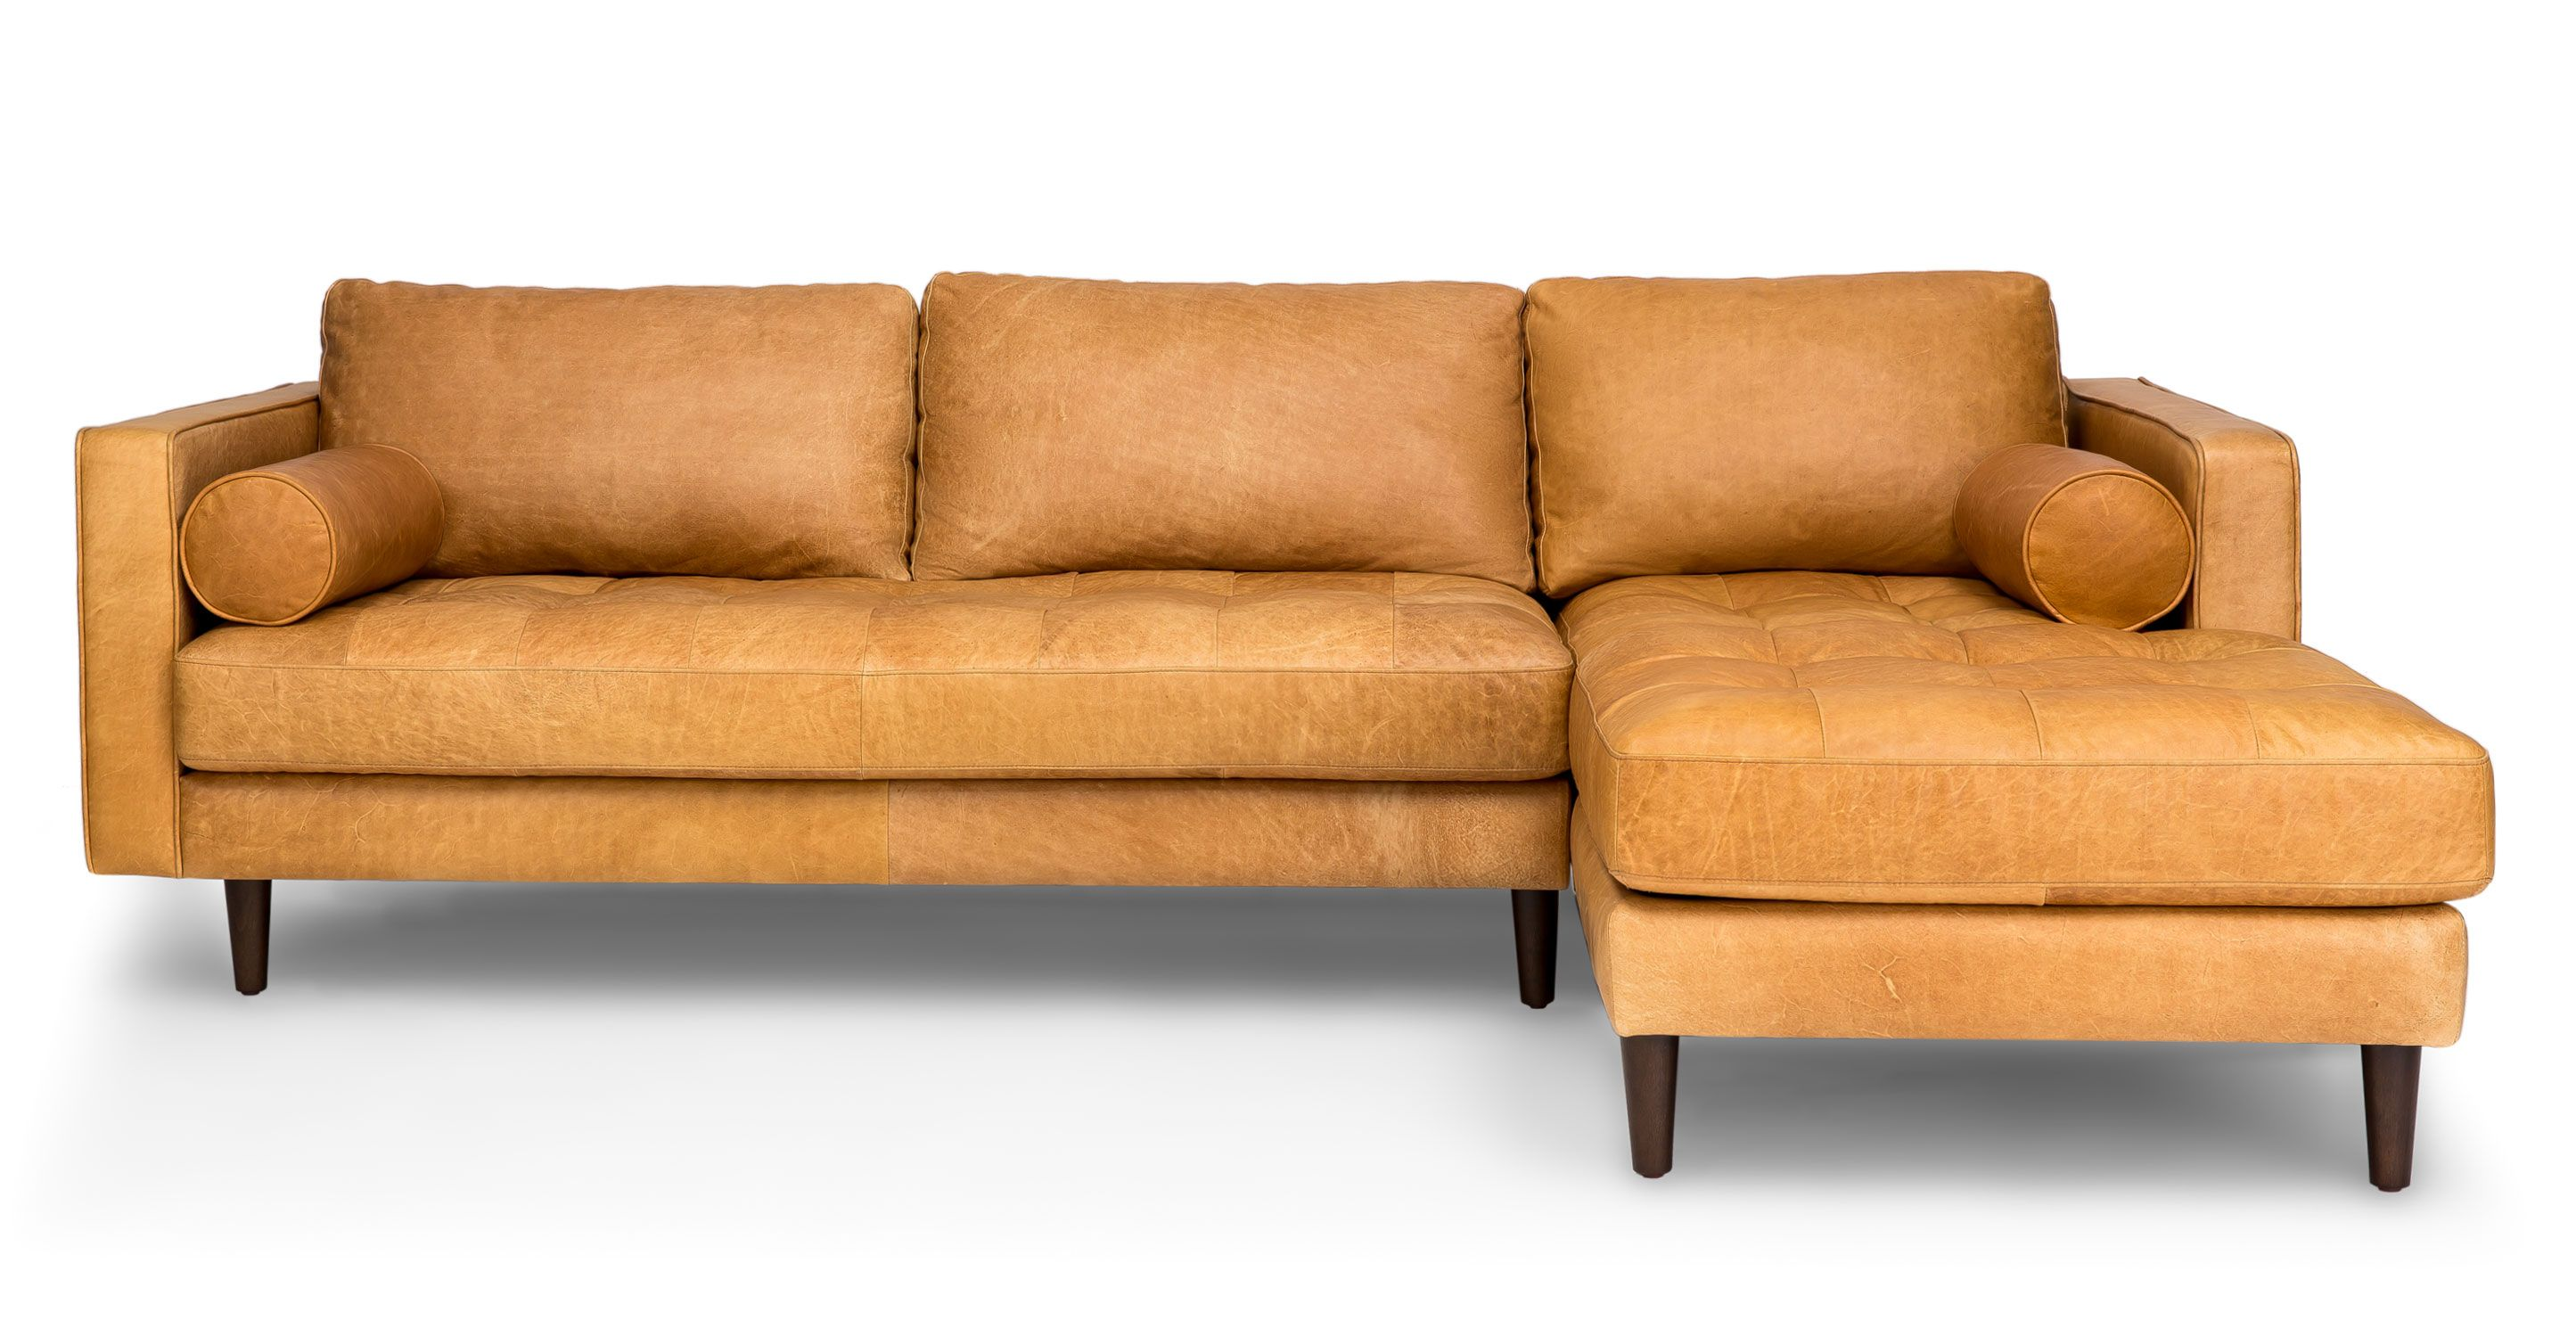 Sven Charme Tan Right Sectional Sofa Sectionals Article Modern Mid Century And Scandinavian Furniture